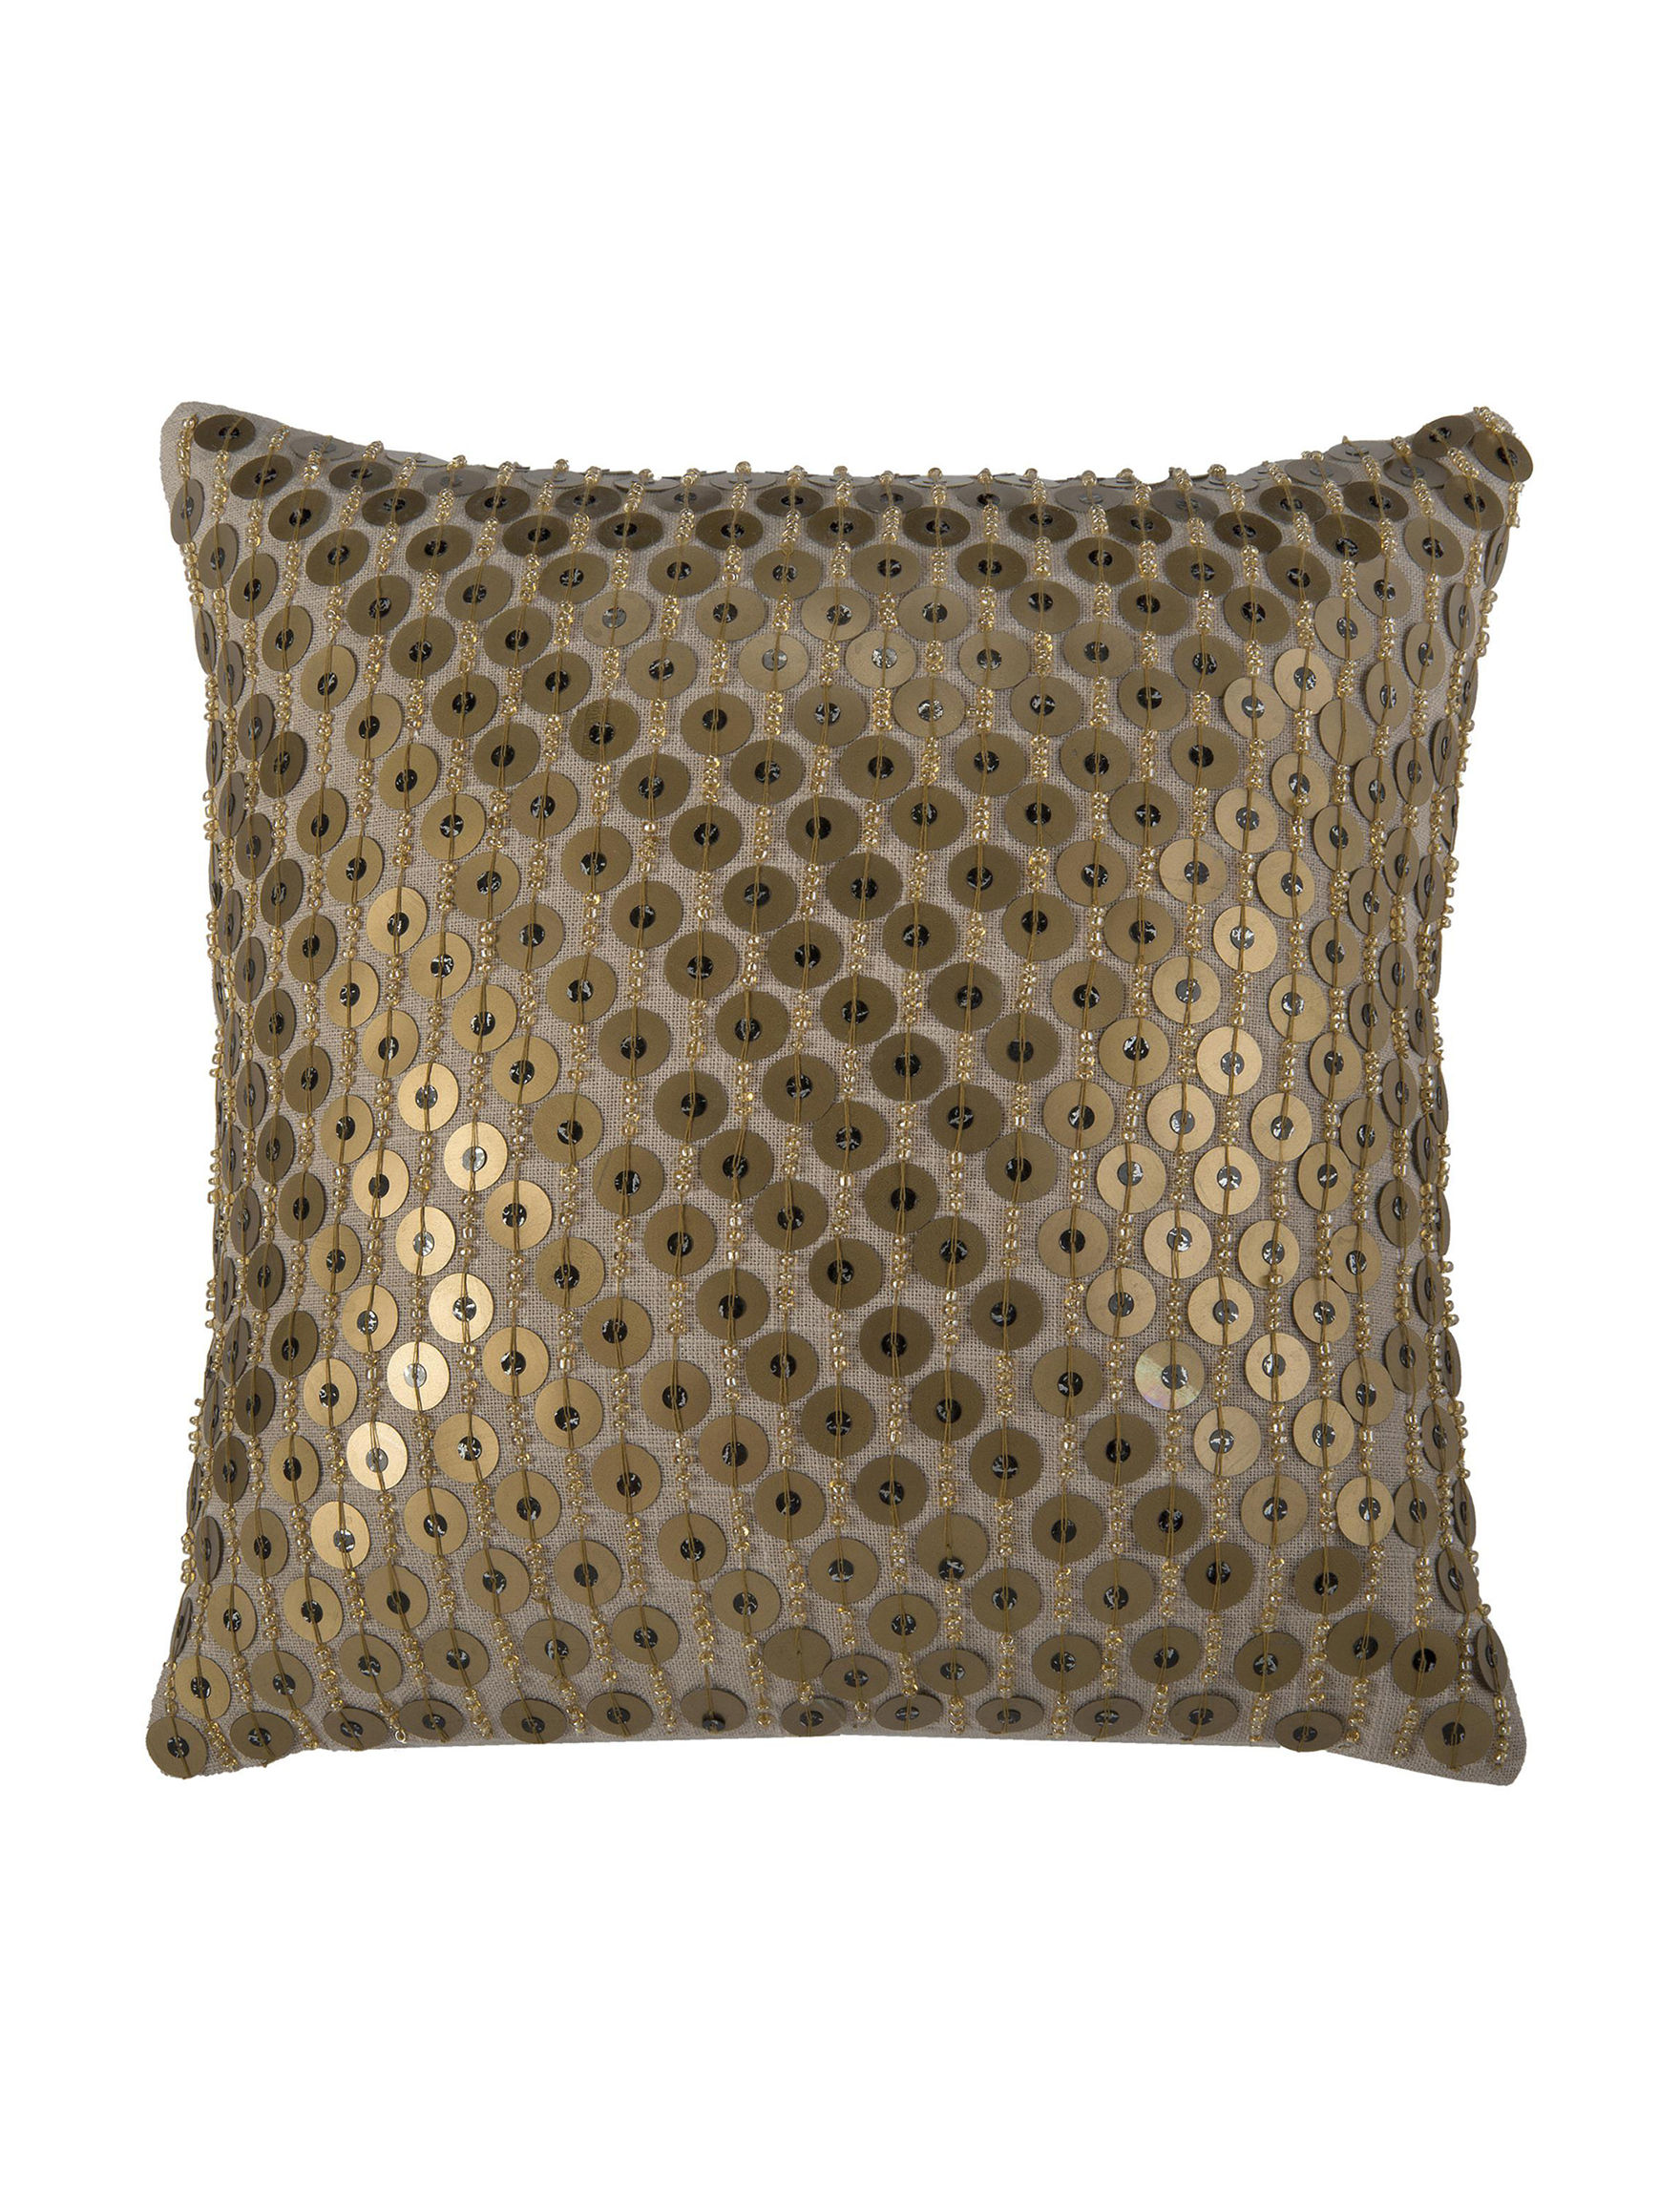 Rizzy Home Khaki Decorative Pillows